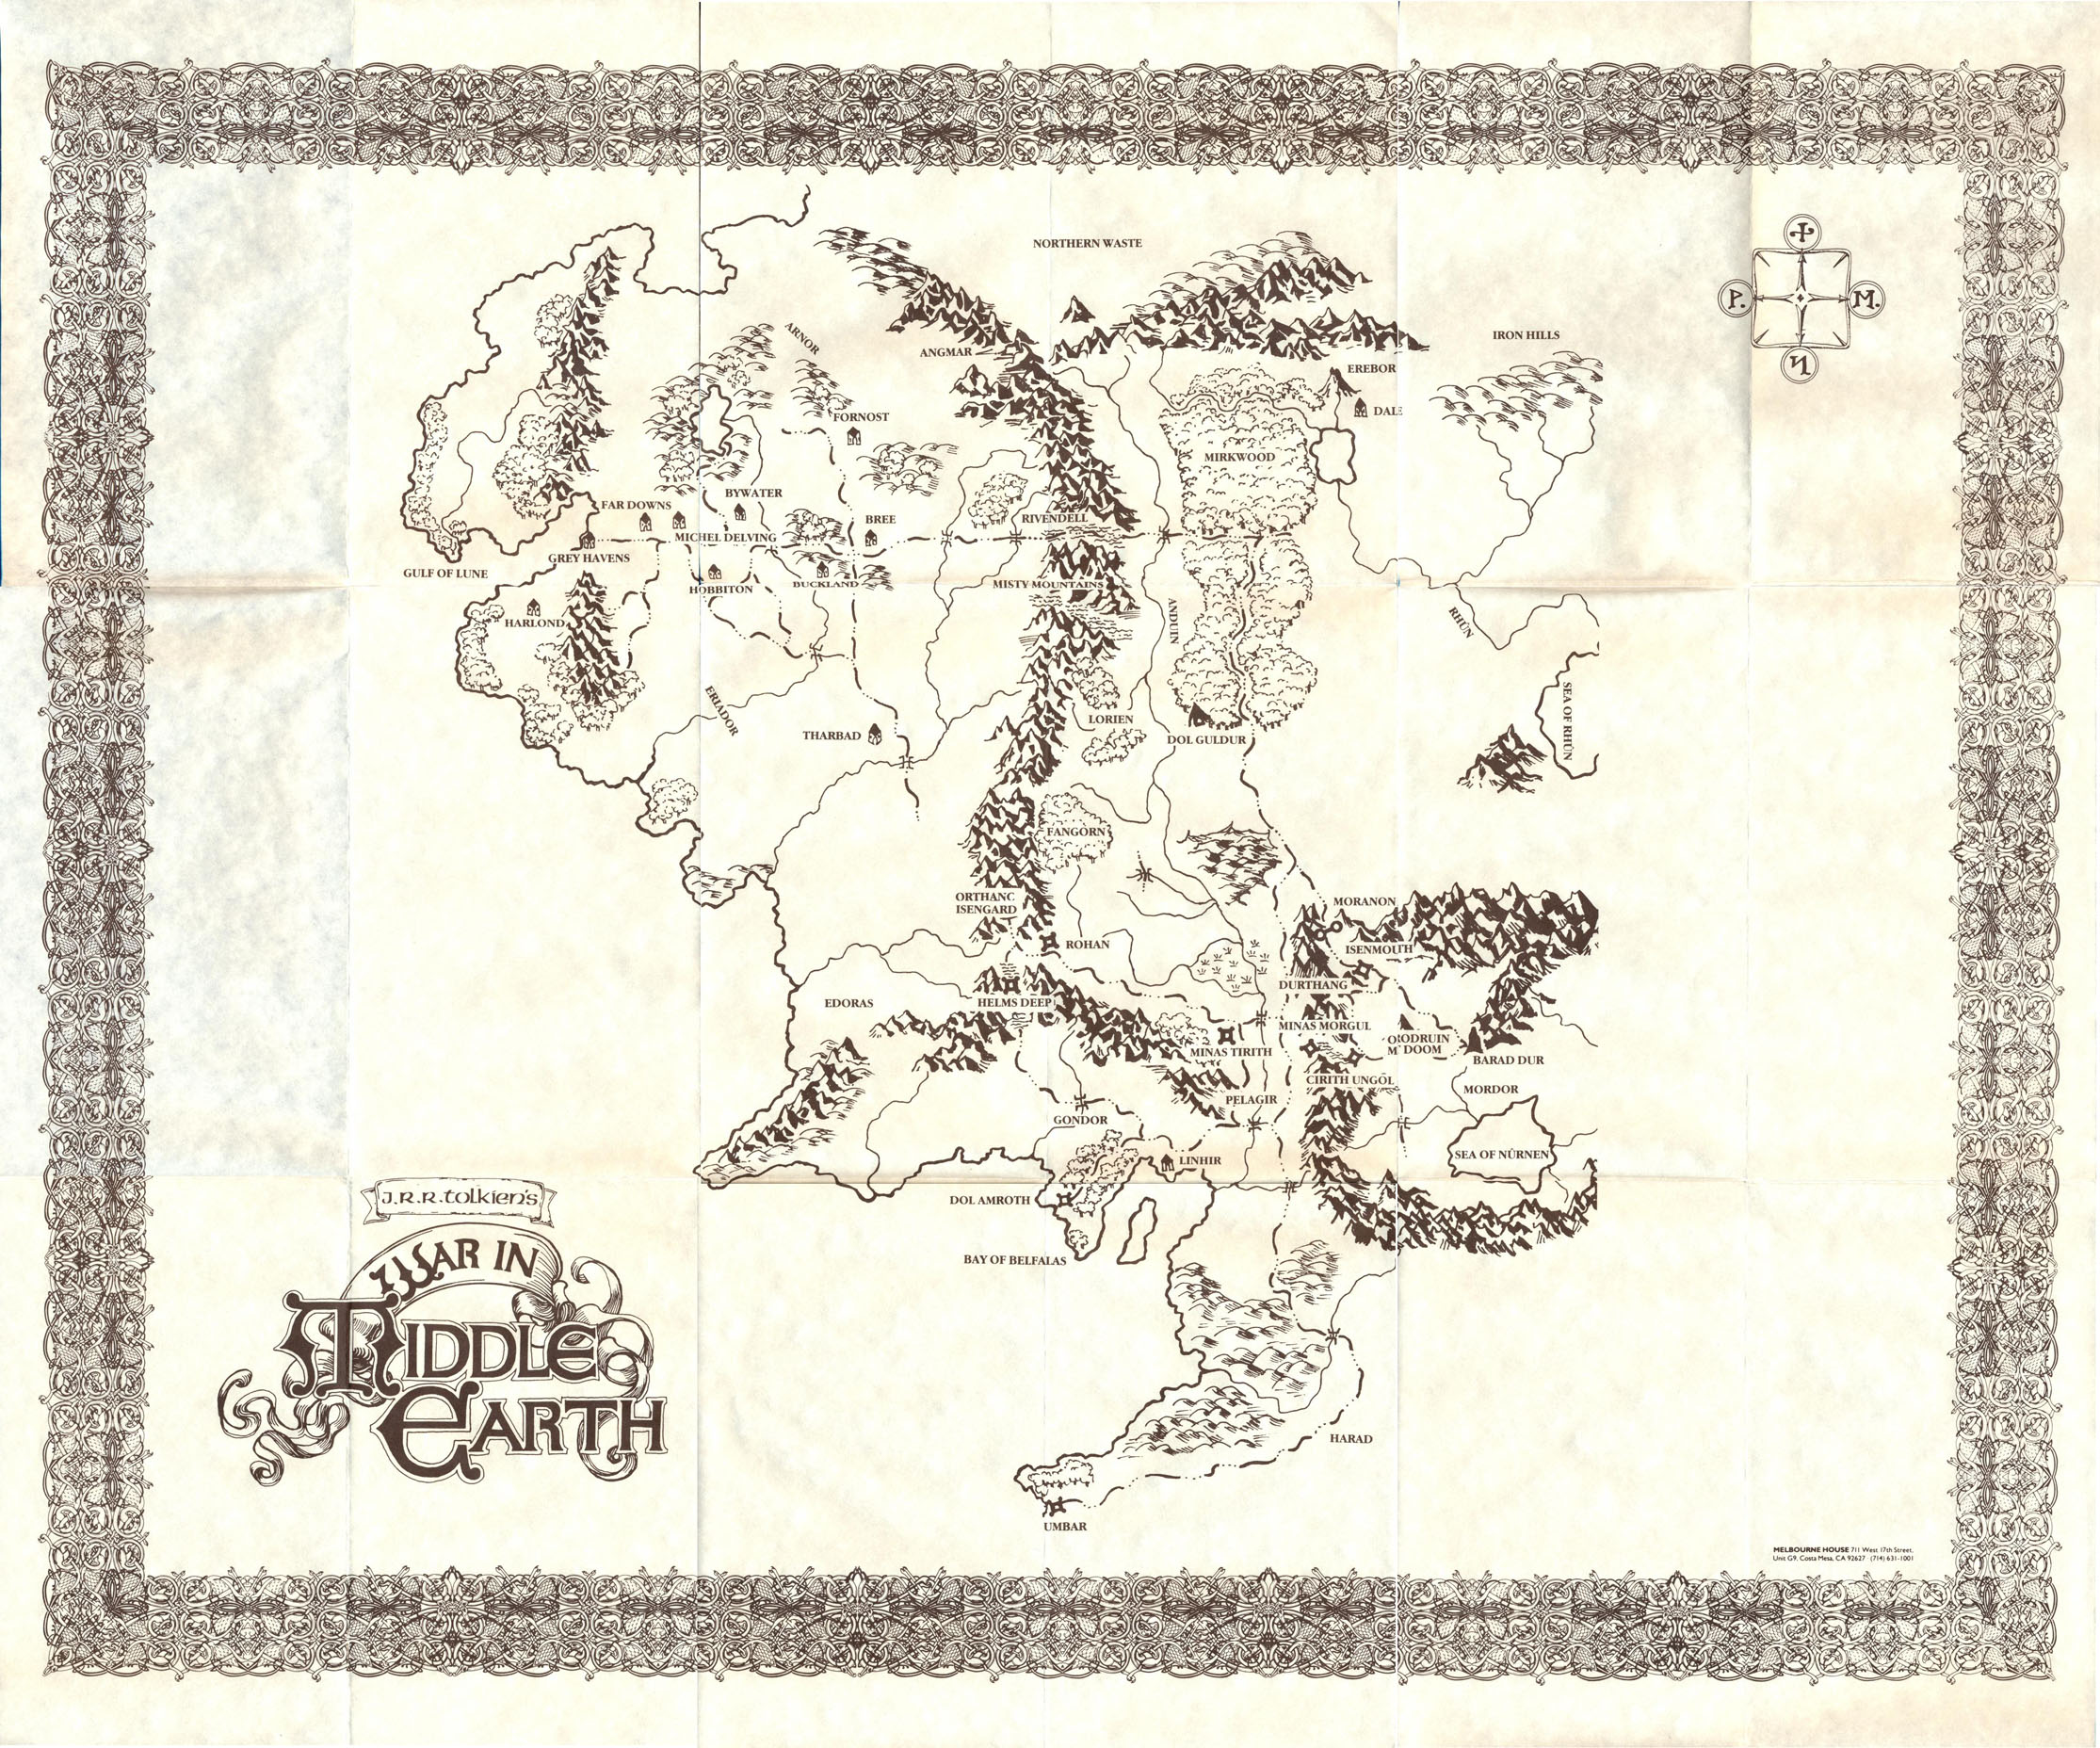 war in middle earth map